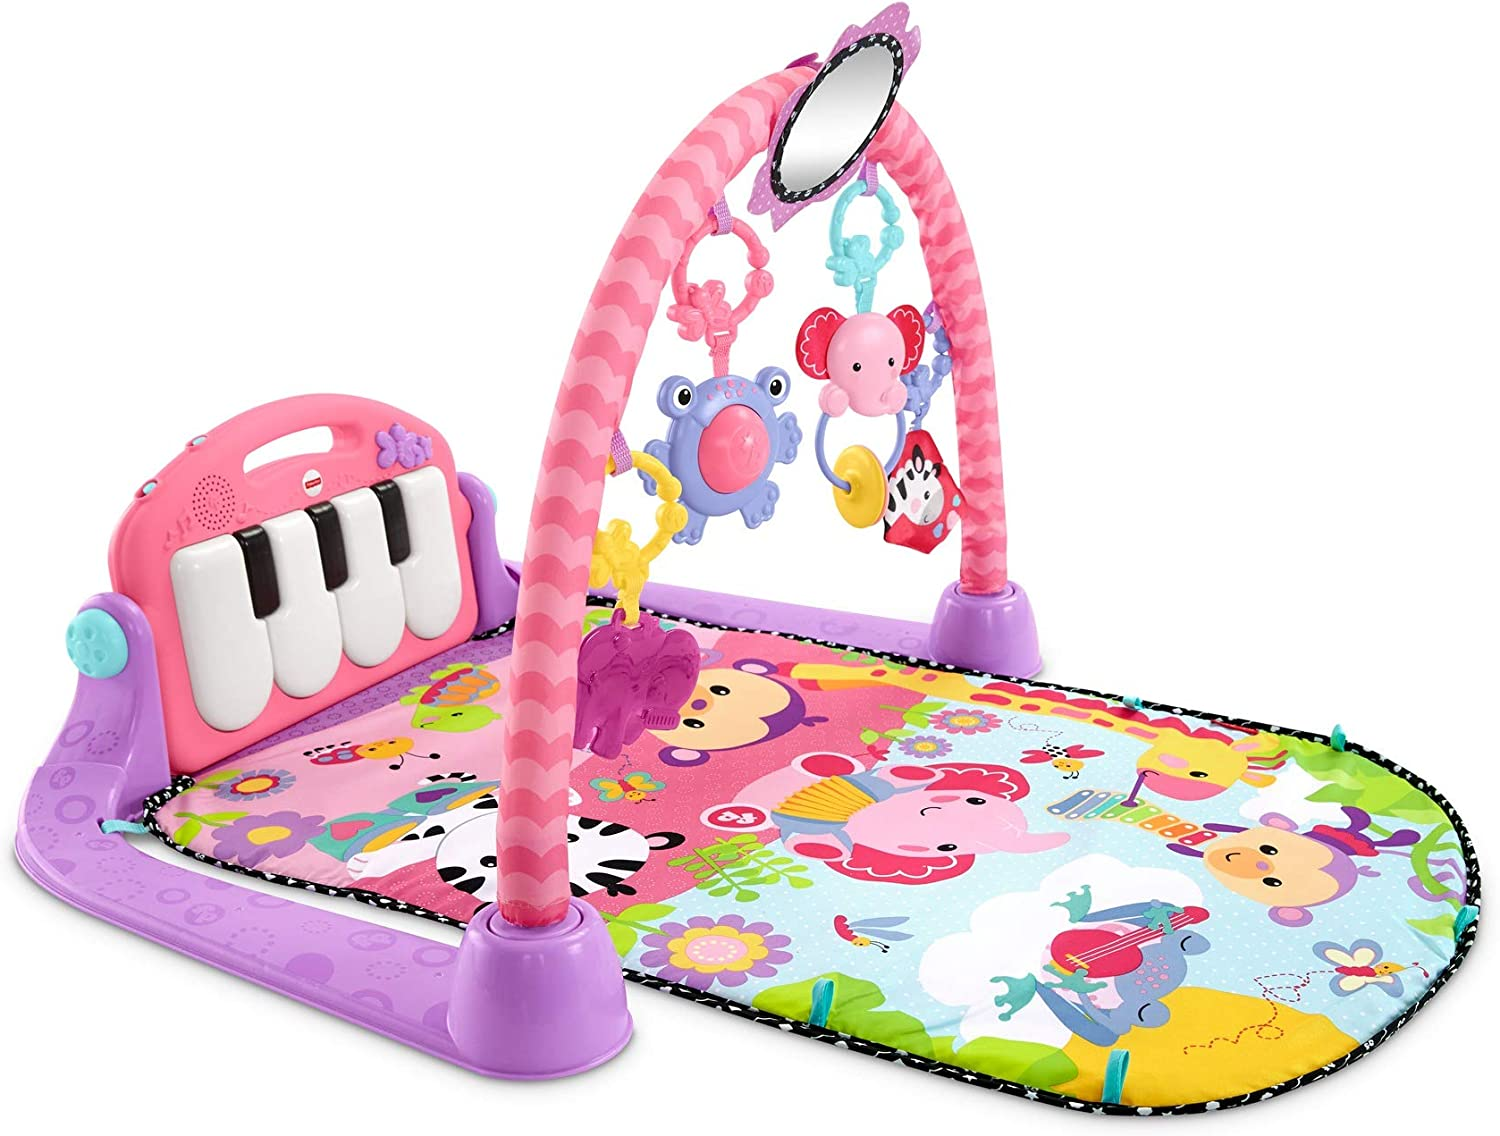 Fisher-Price Kick & Play Piano Gym-Pink, Color Multicolor (Rosa), 67.8 x 45.5 x 8.1 (Mattel BMH48)